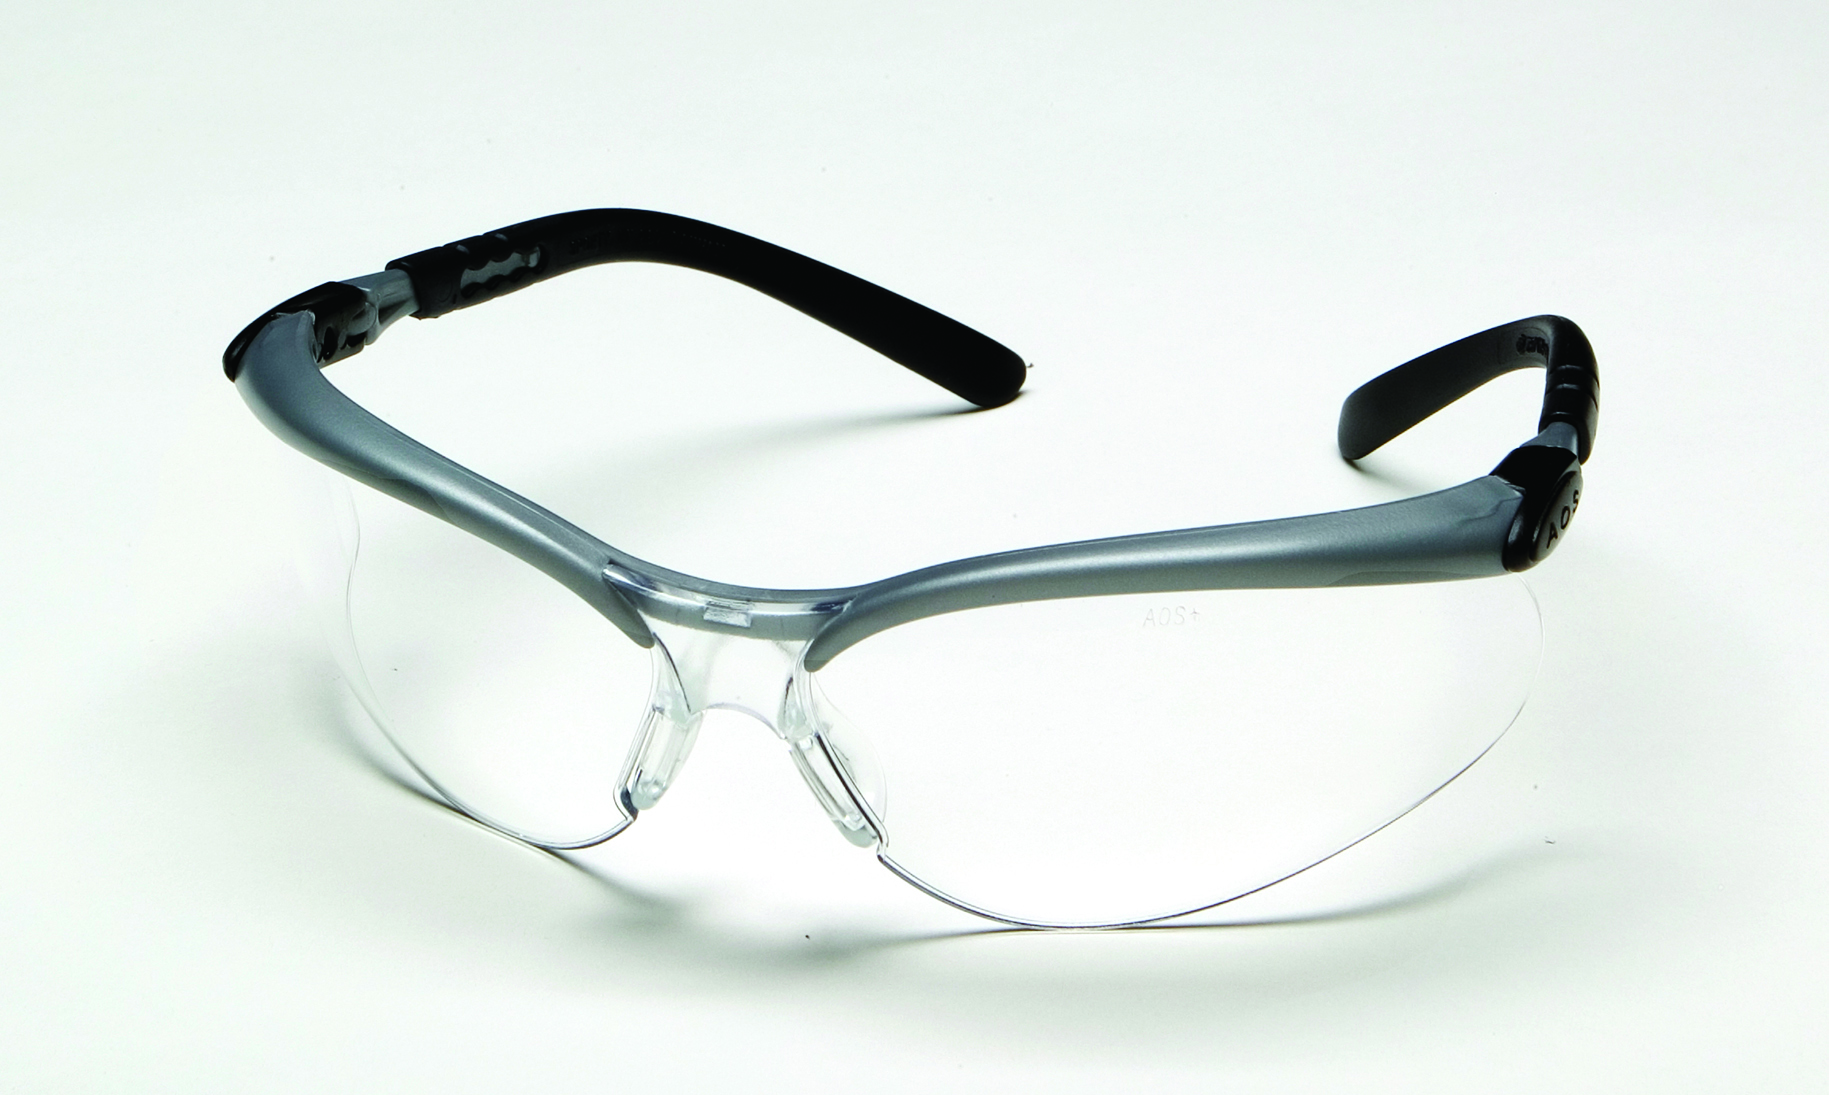 11380-00000-20 - 3M™ BX™ Safety Eyewear-Silver/Black Frame, Clear Lens-----UOM: 1/EA